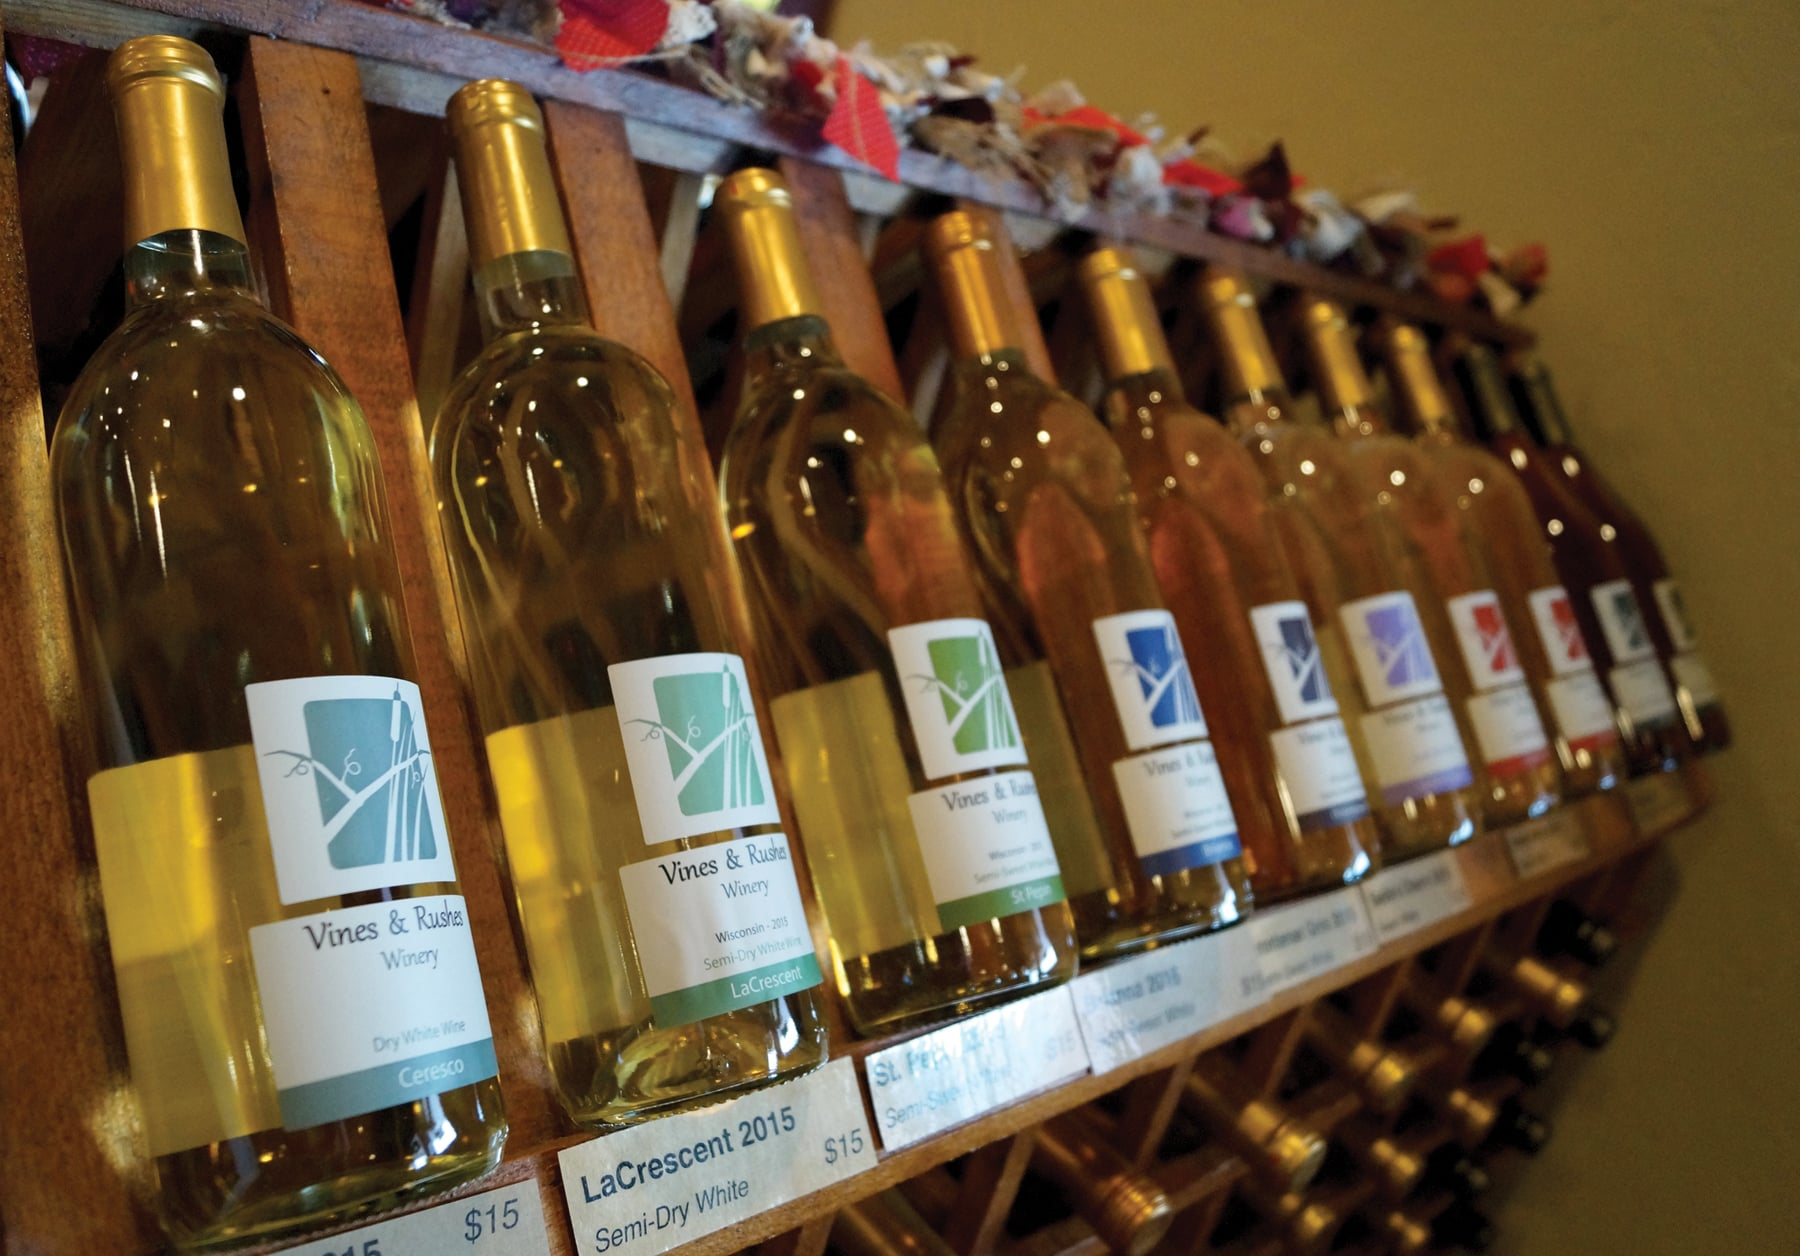 Vines and Rushes - Row of wine bottles on shelf